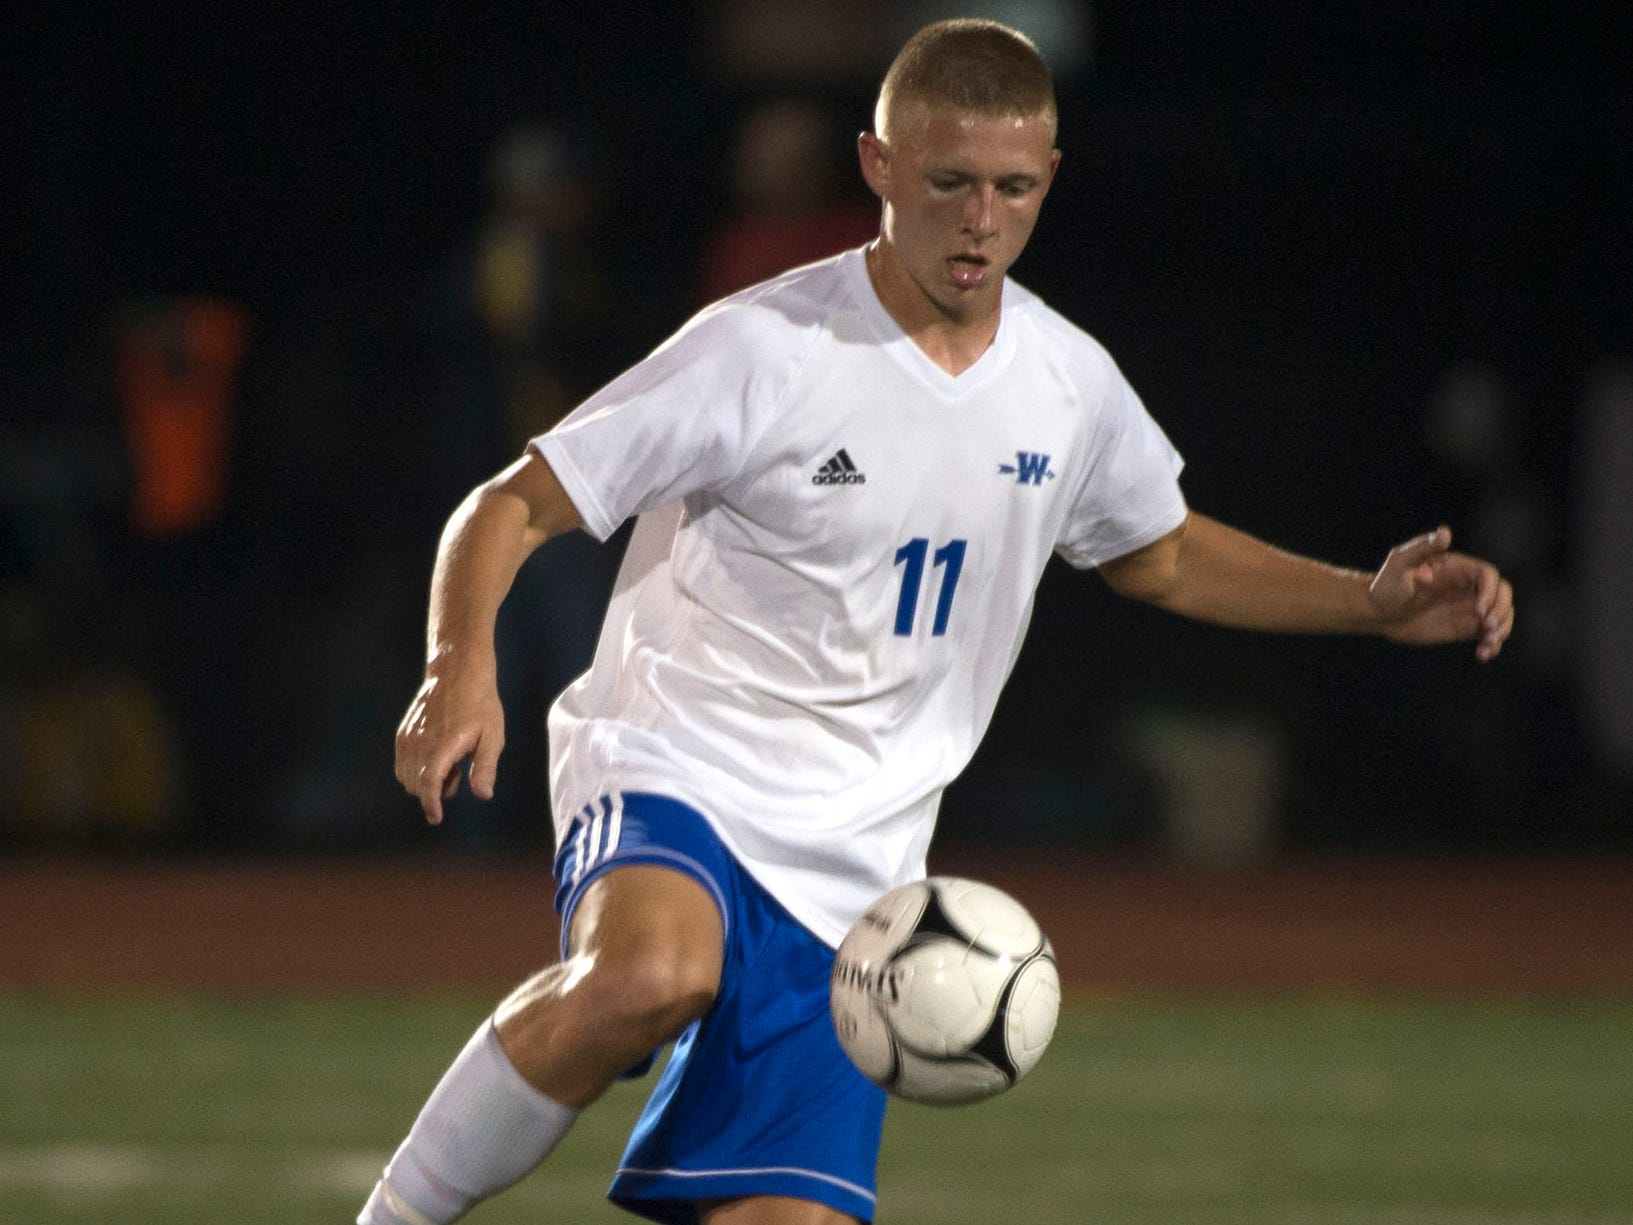 Waynesboro's Derek Buhrman nailed a couple of goals on the night. Waynesboro shocked Greencastle with a 4-0 shutout in PIAA Mid-Colonial soccer on Tuesday, Oct. 9, 2018.